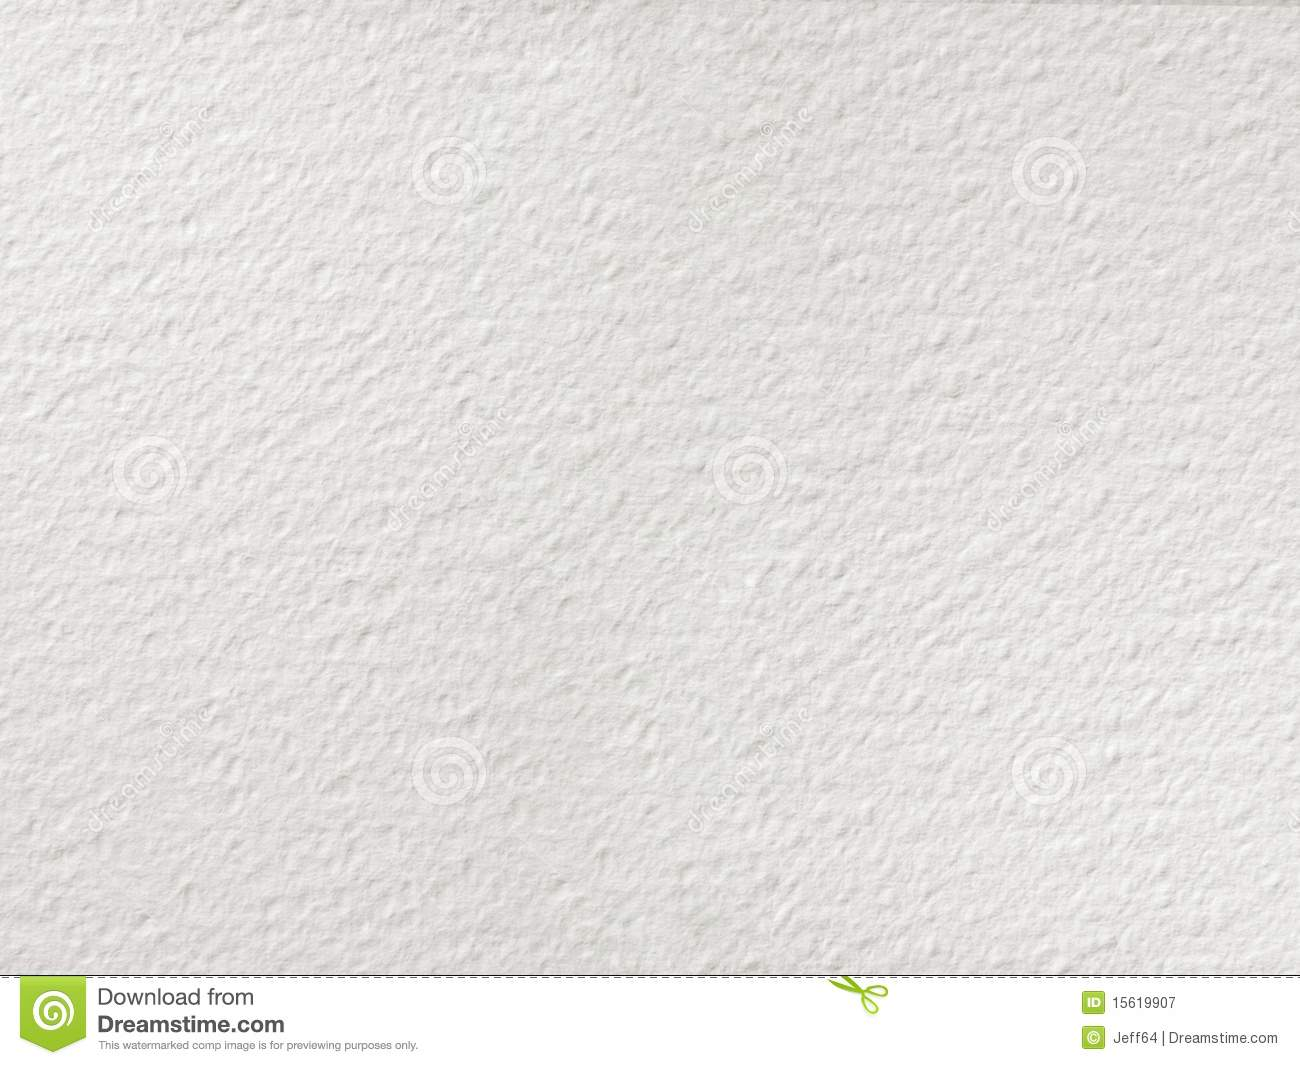 watercolor paper texture Watercolor paper texture vector illustration if you need technical support for a product you purchased, please message the seller by clicking the support tab beside the comments field on.